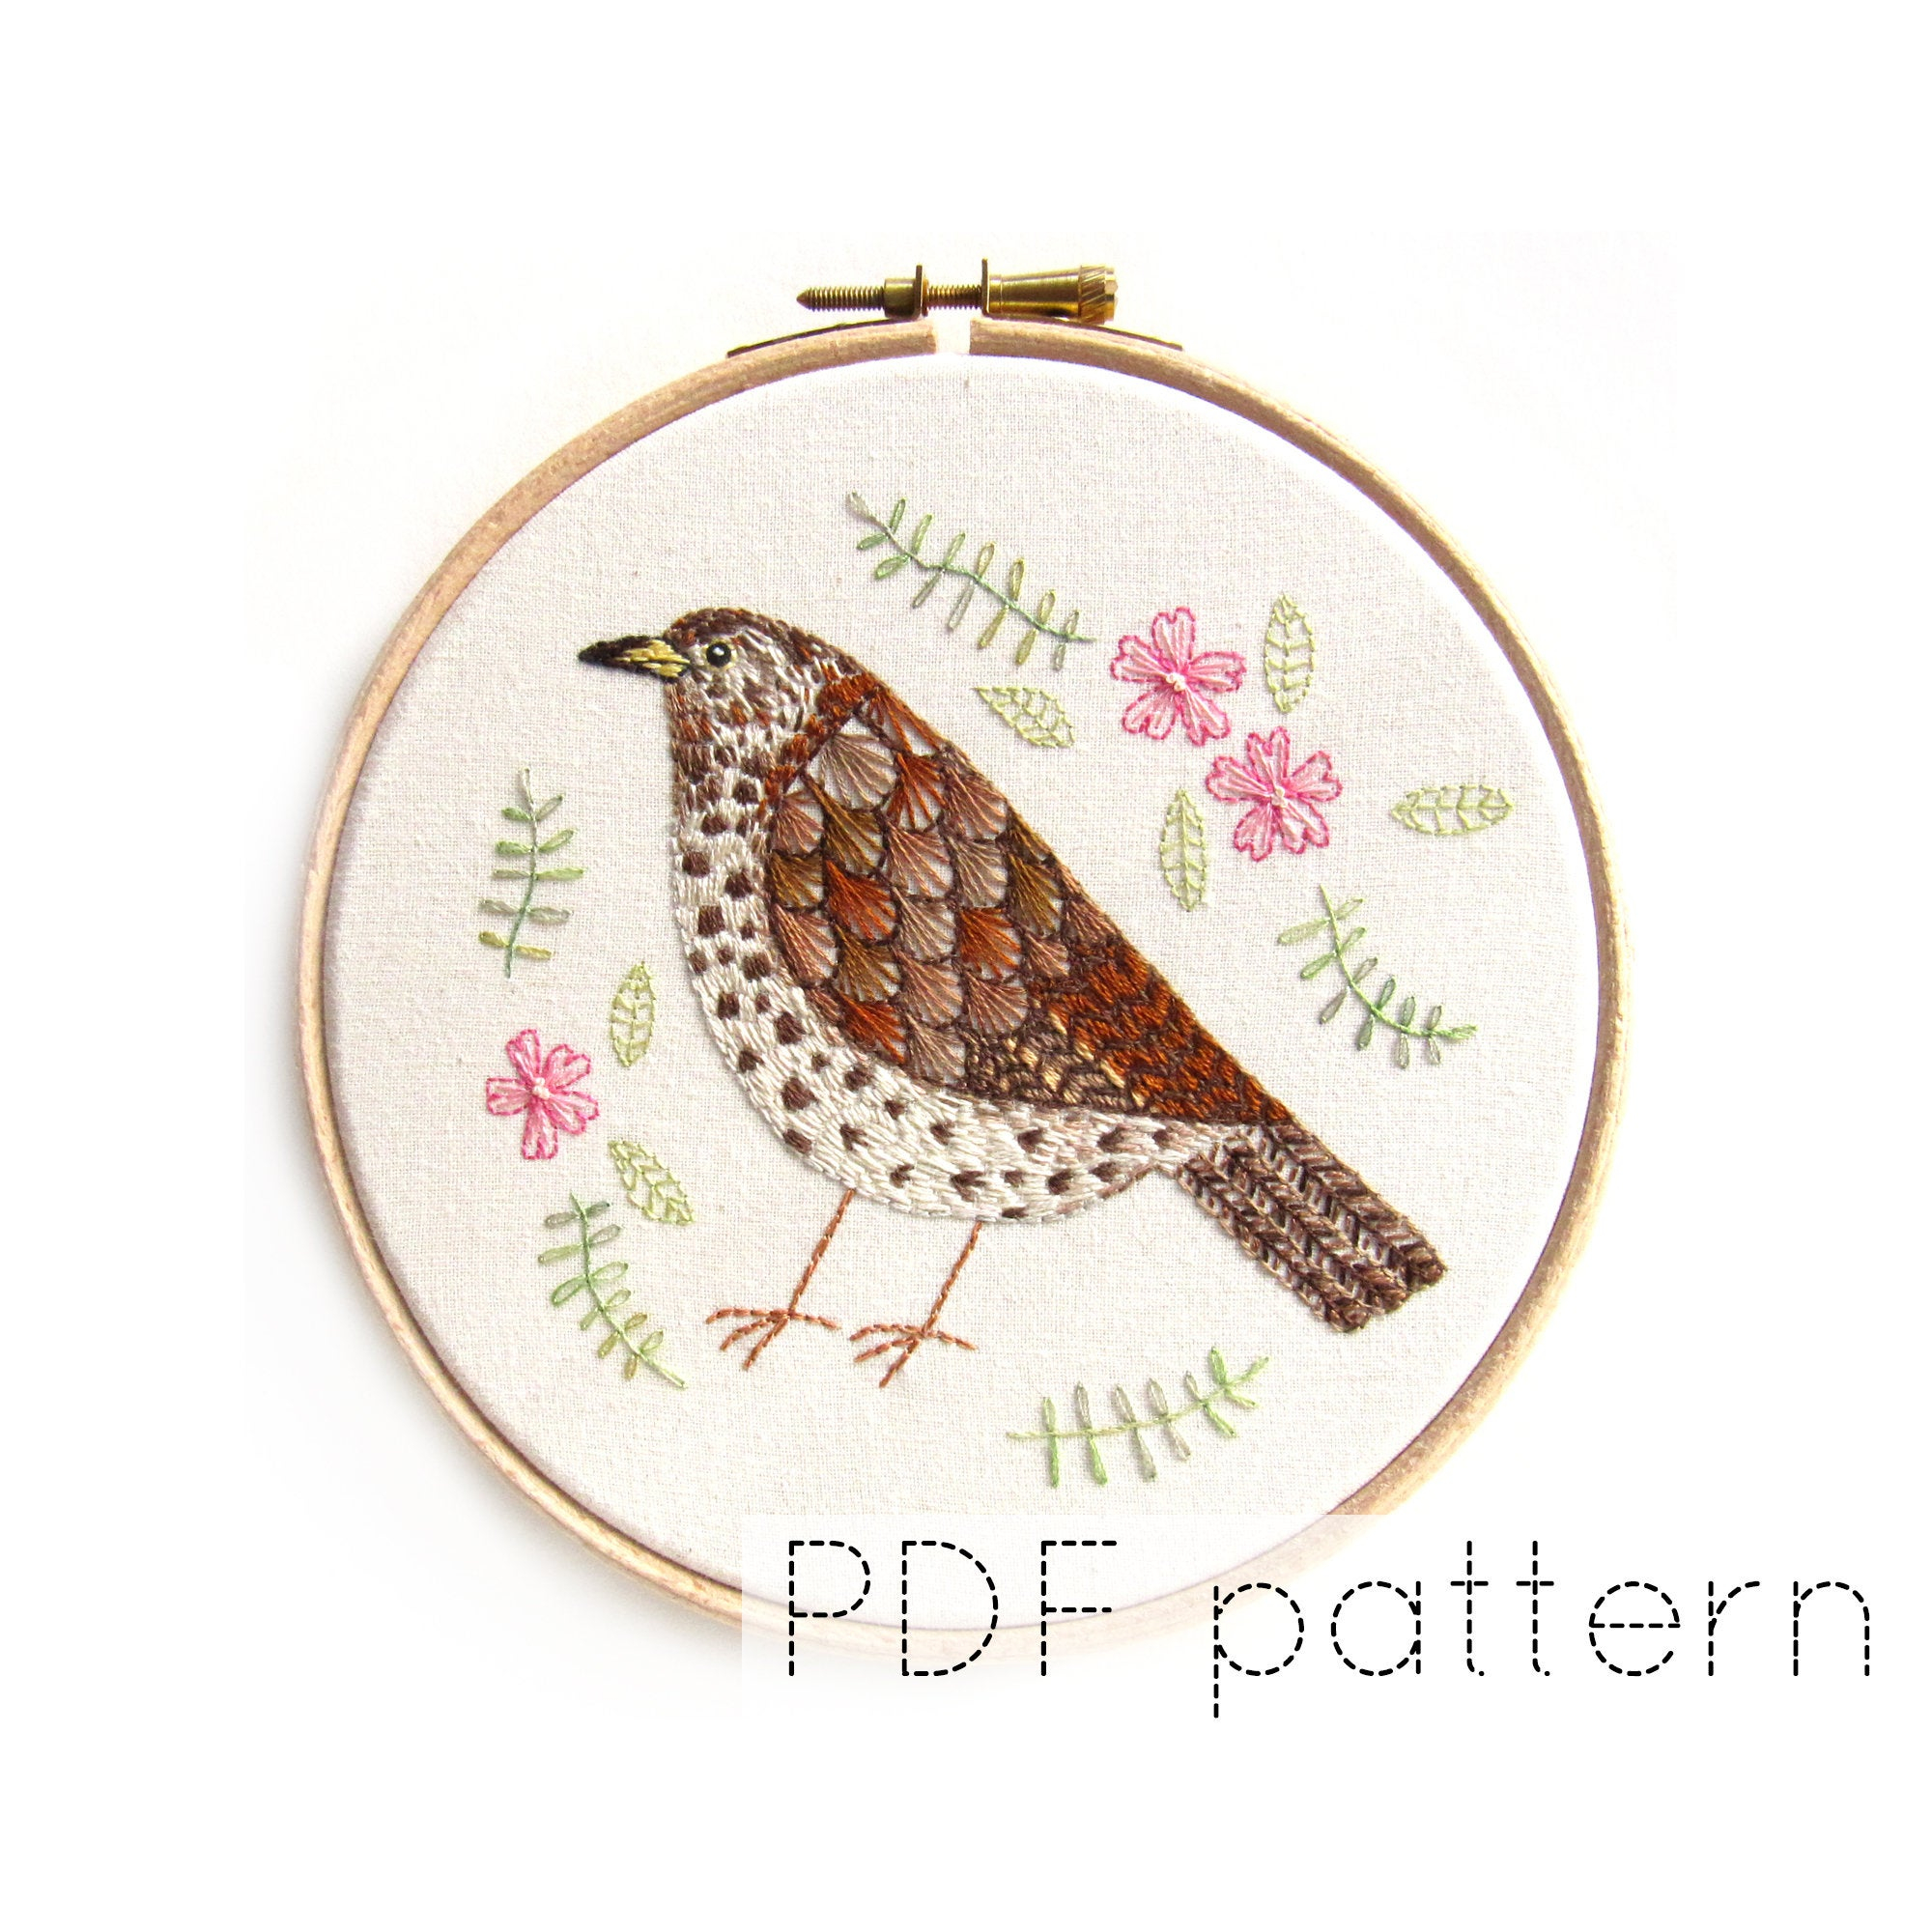 Bird Embroidery Pattern Song Thrush Bird Embroidery Pattern Instant Download